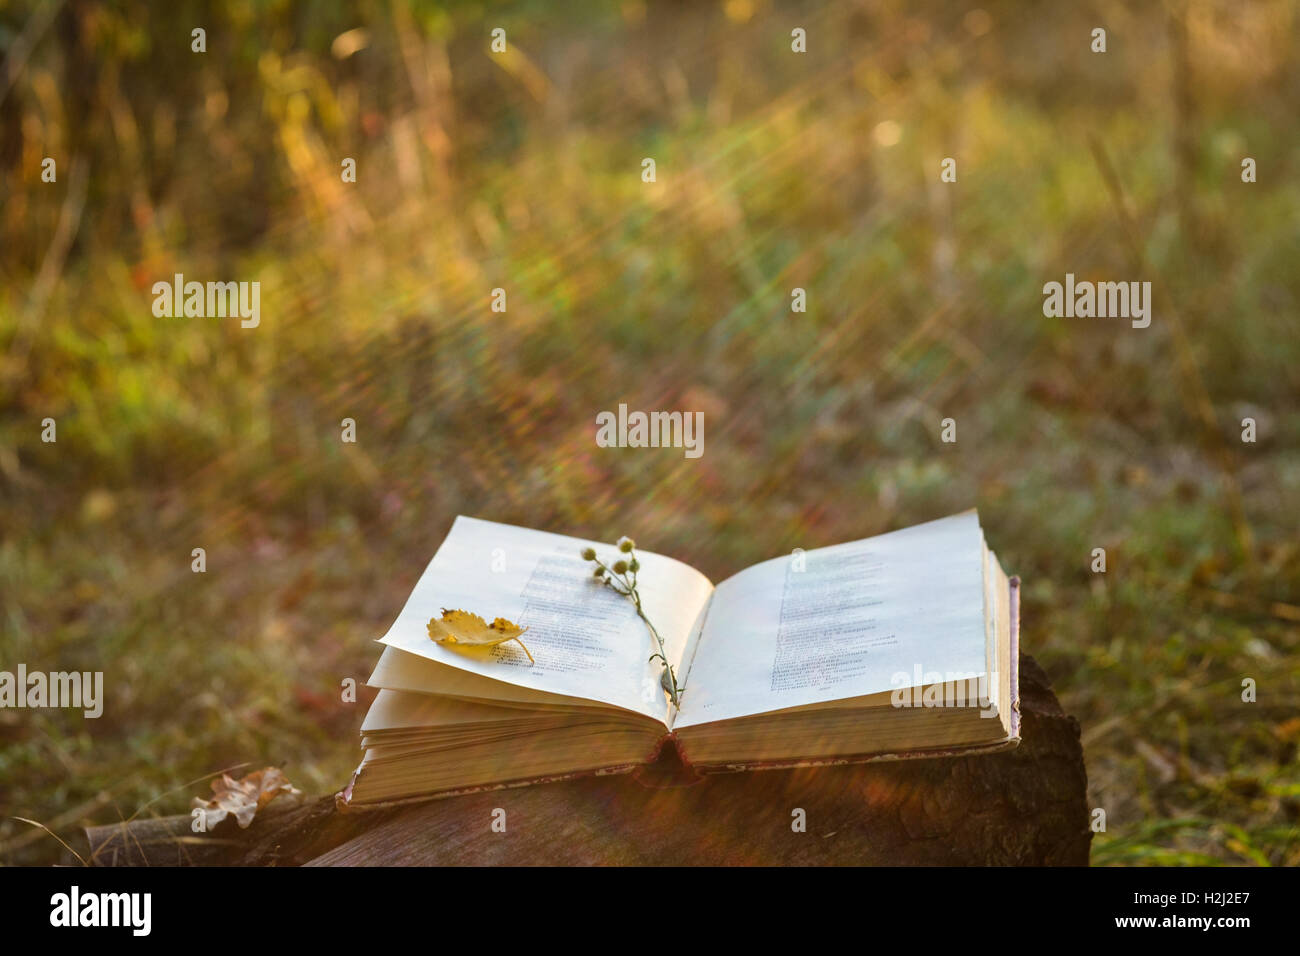 Poetry book with fallen leaves and flower on it - Stock Image